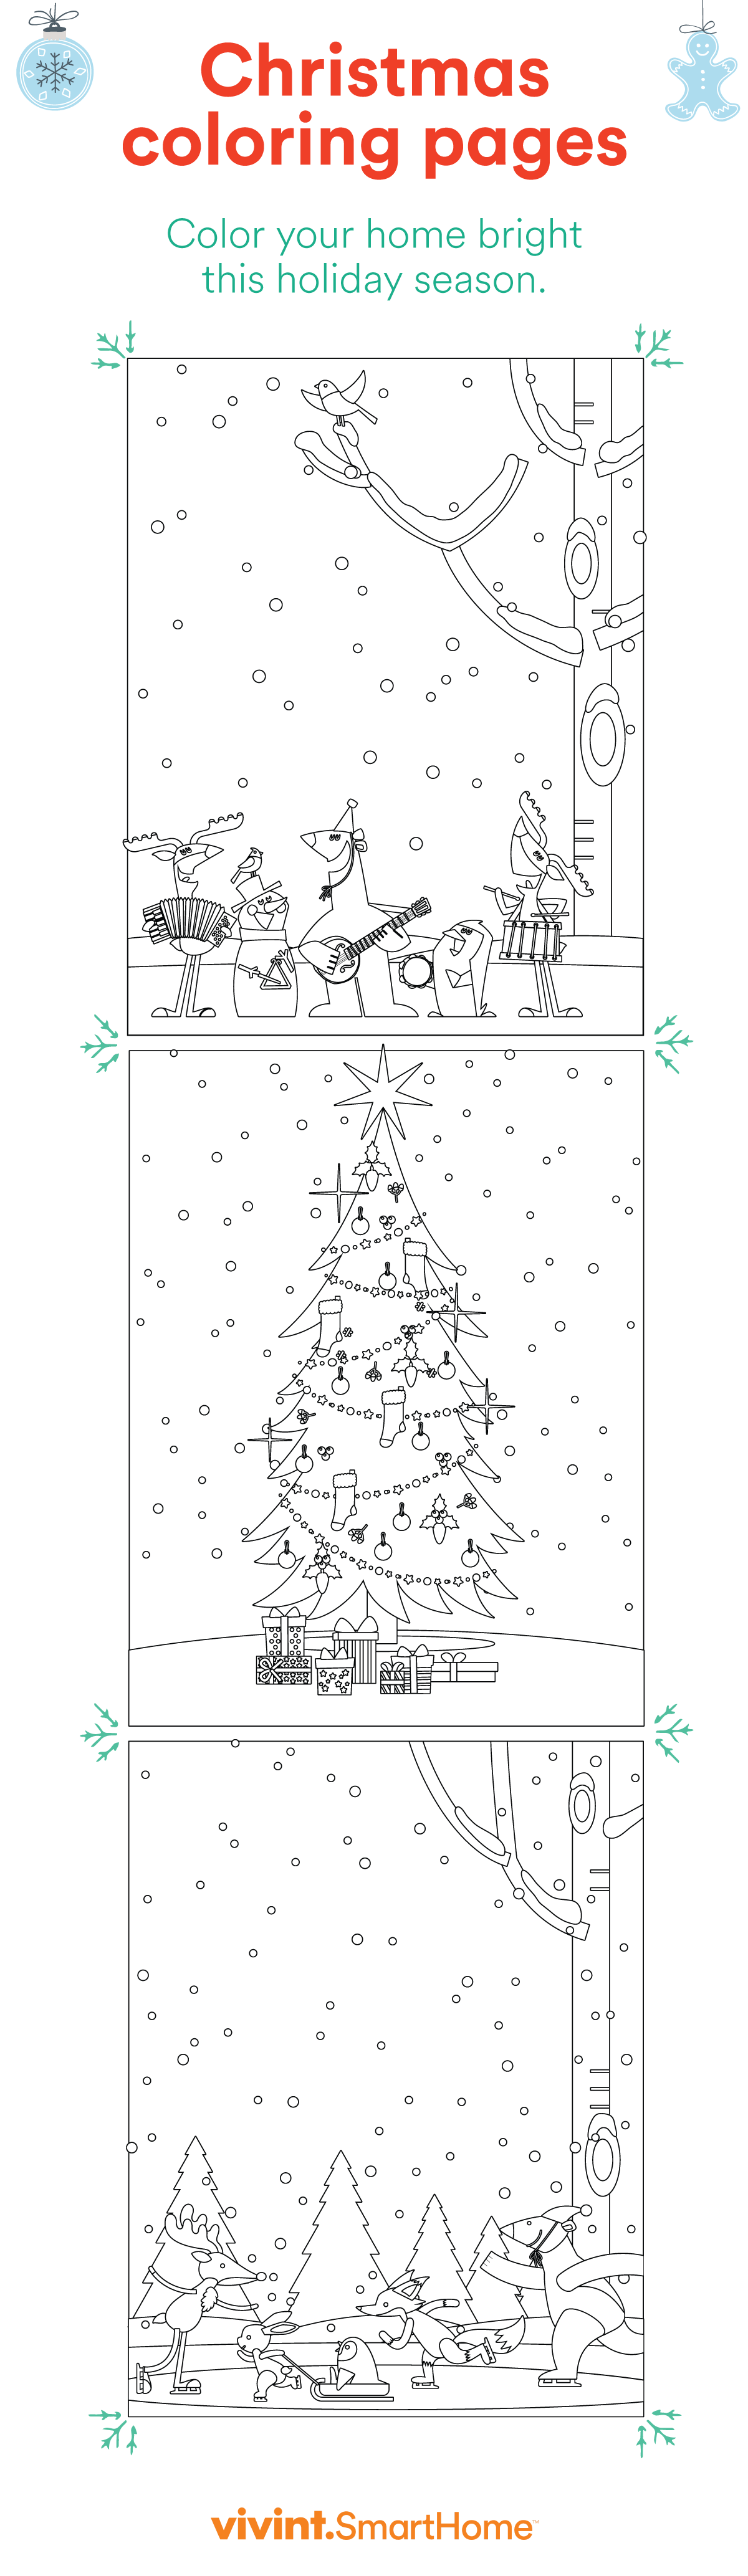 Download free Christmas coloring pages from Vivint Smart Home